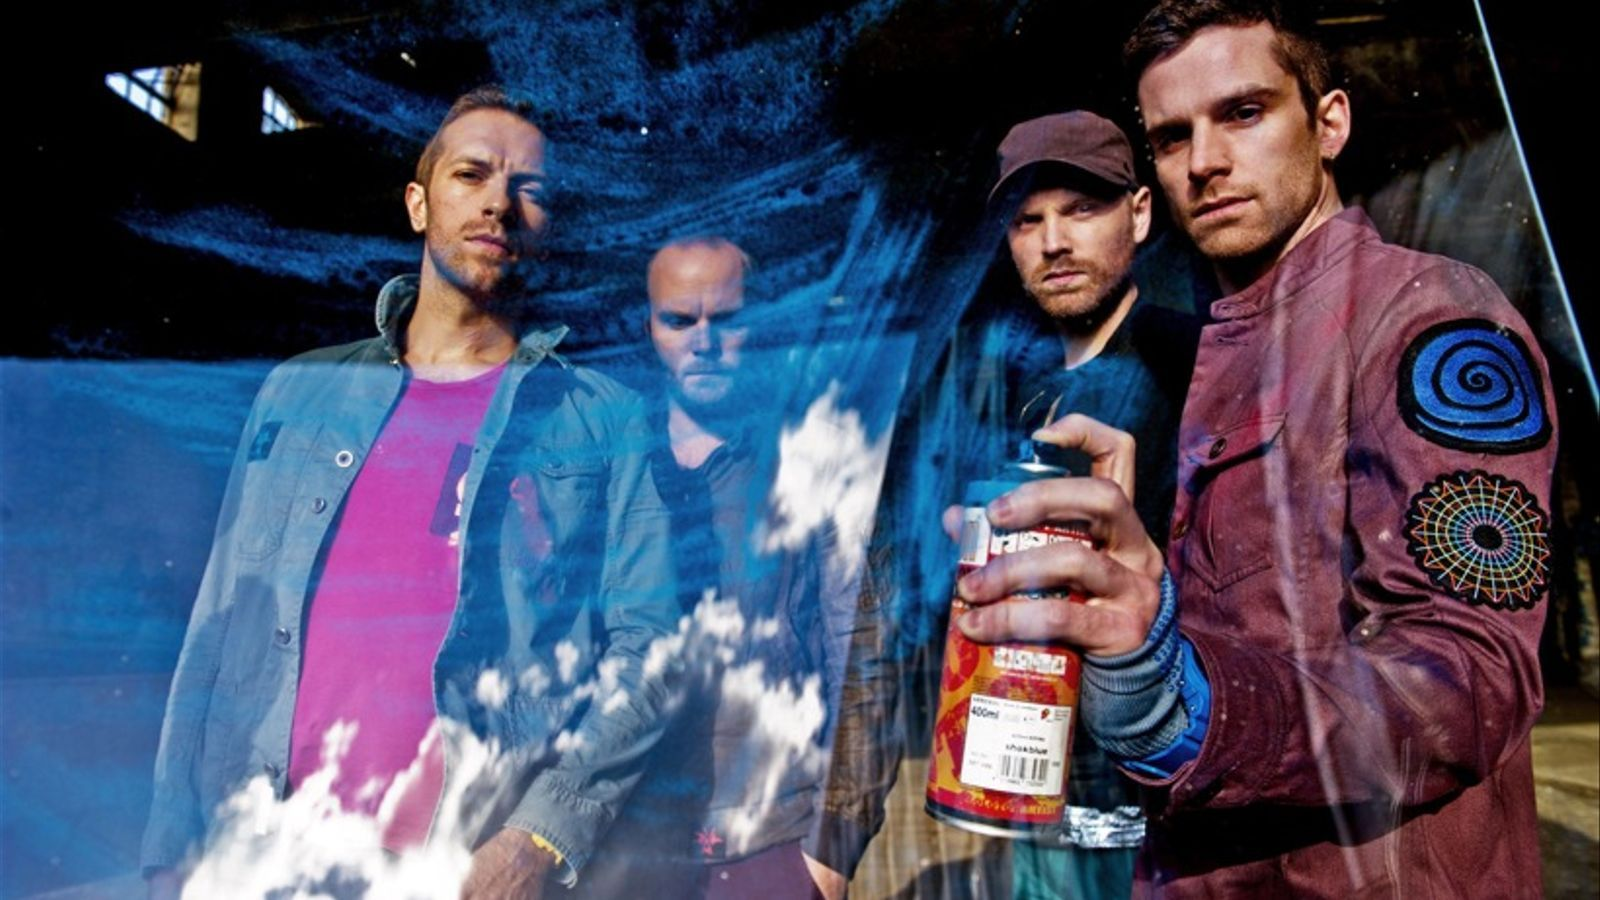 Every teardrop is a waterfall, el nou senzill de Coldplay